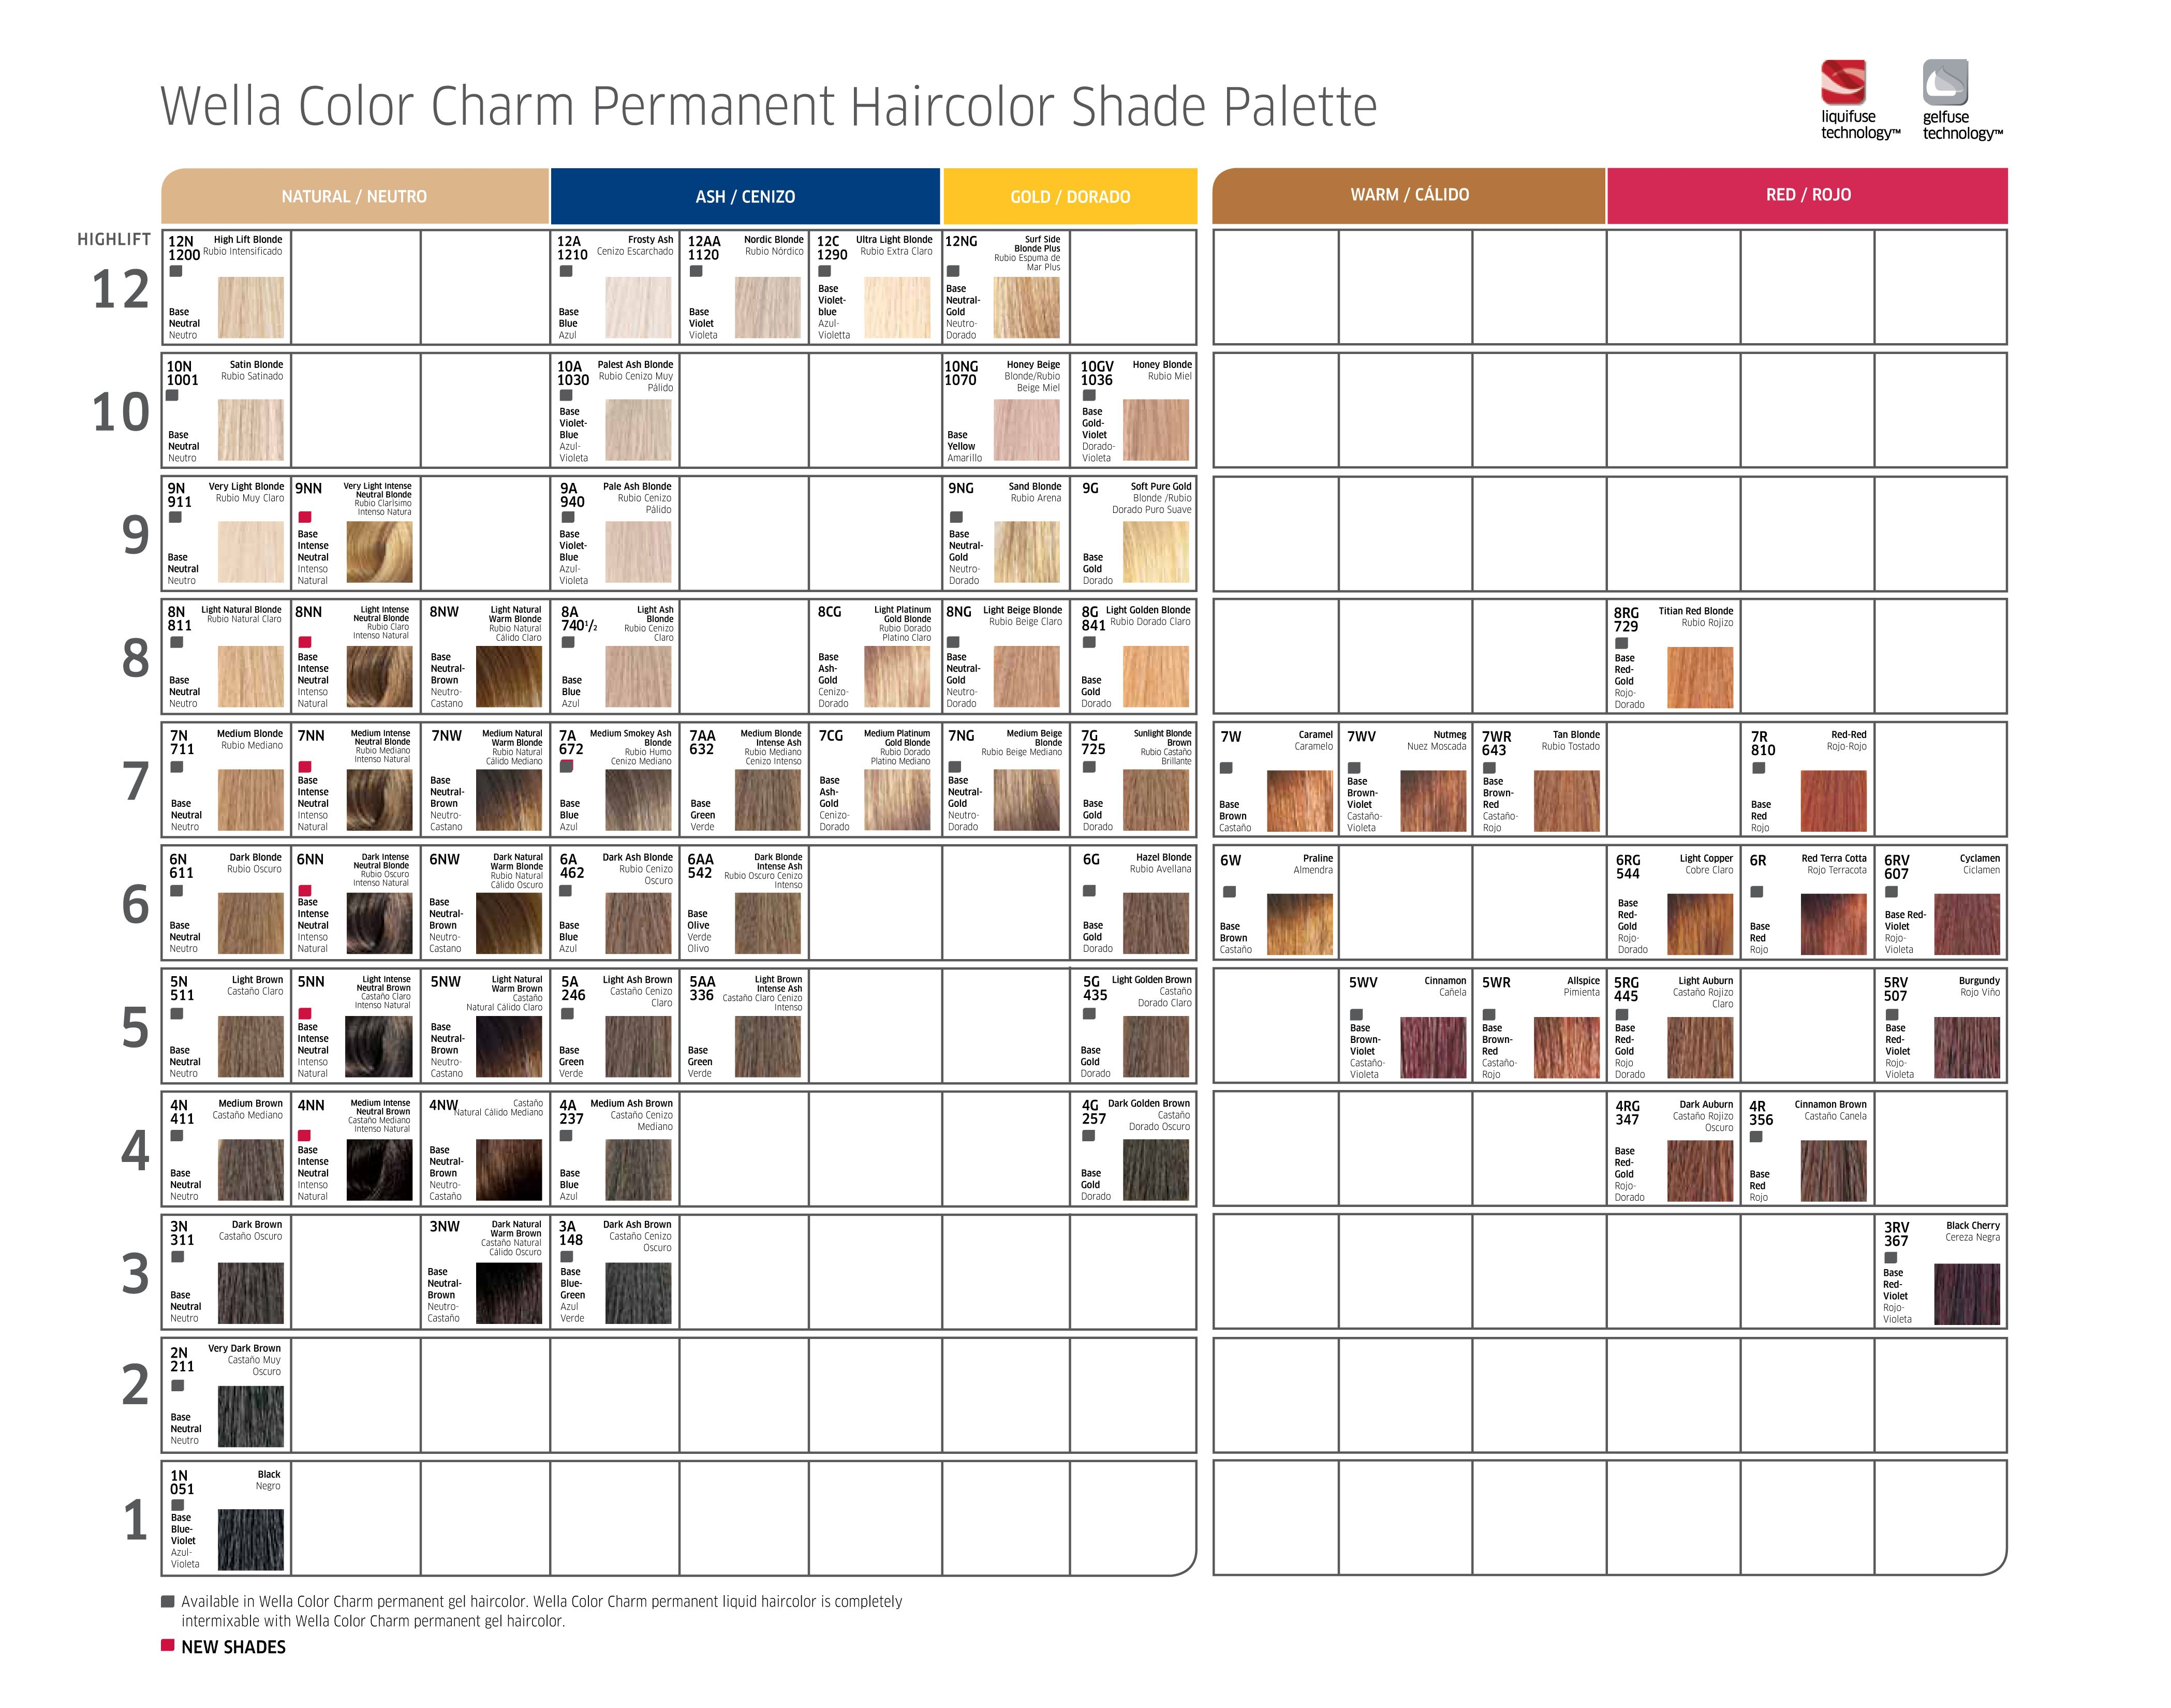 cac acf  bcc      wella color charm also permanent  cindy  work pinte rh pinterest